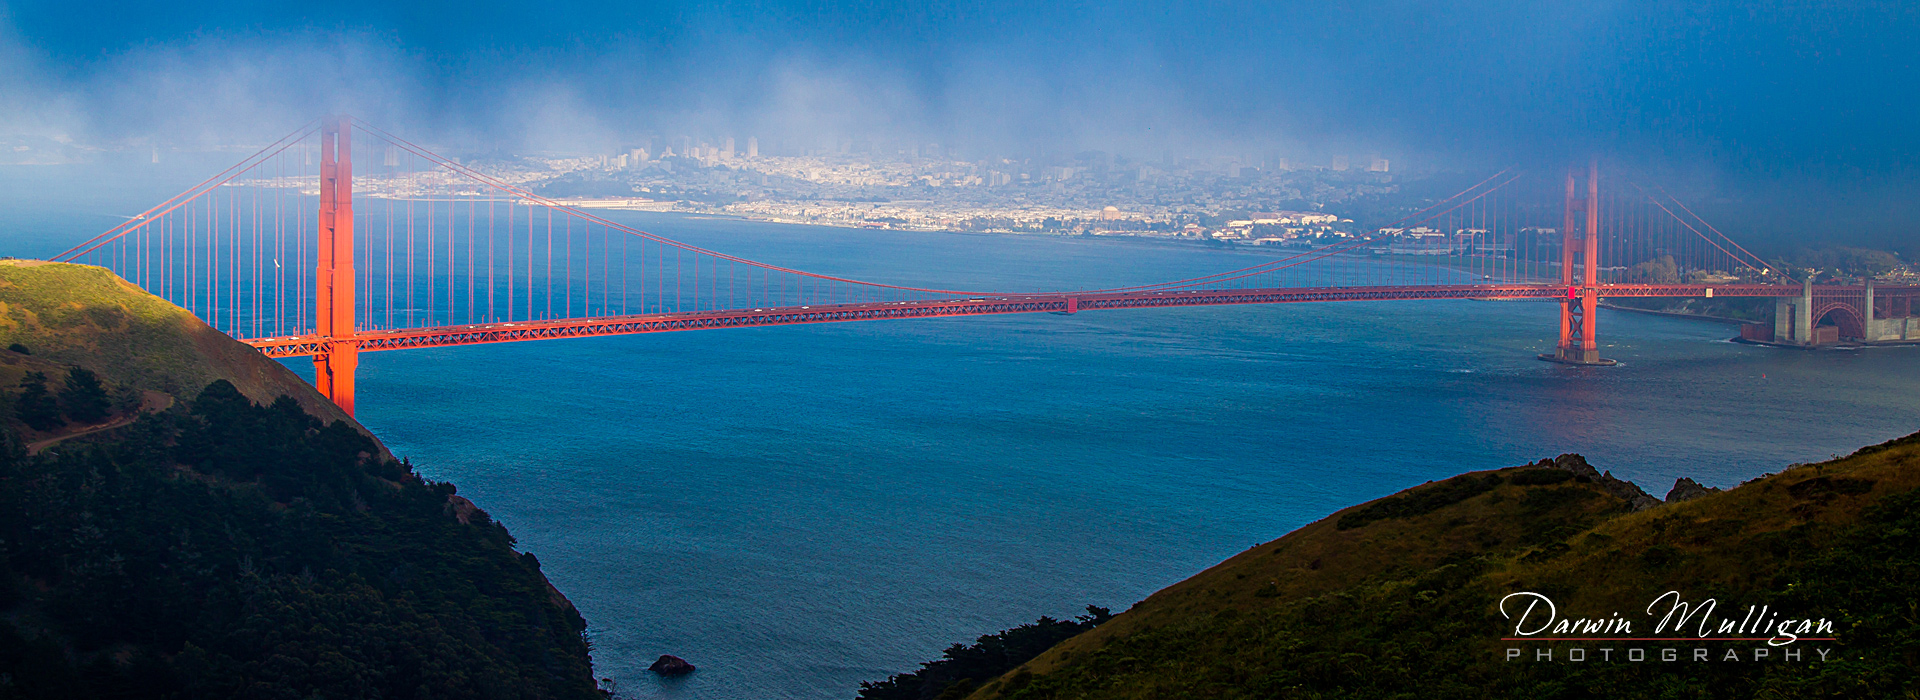 Panoramic-view-of-Golden-Gate-Bridge-San-Francisco-California